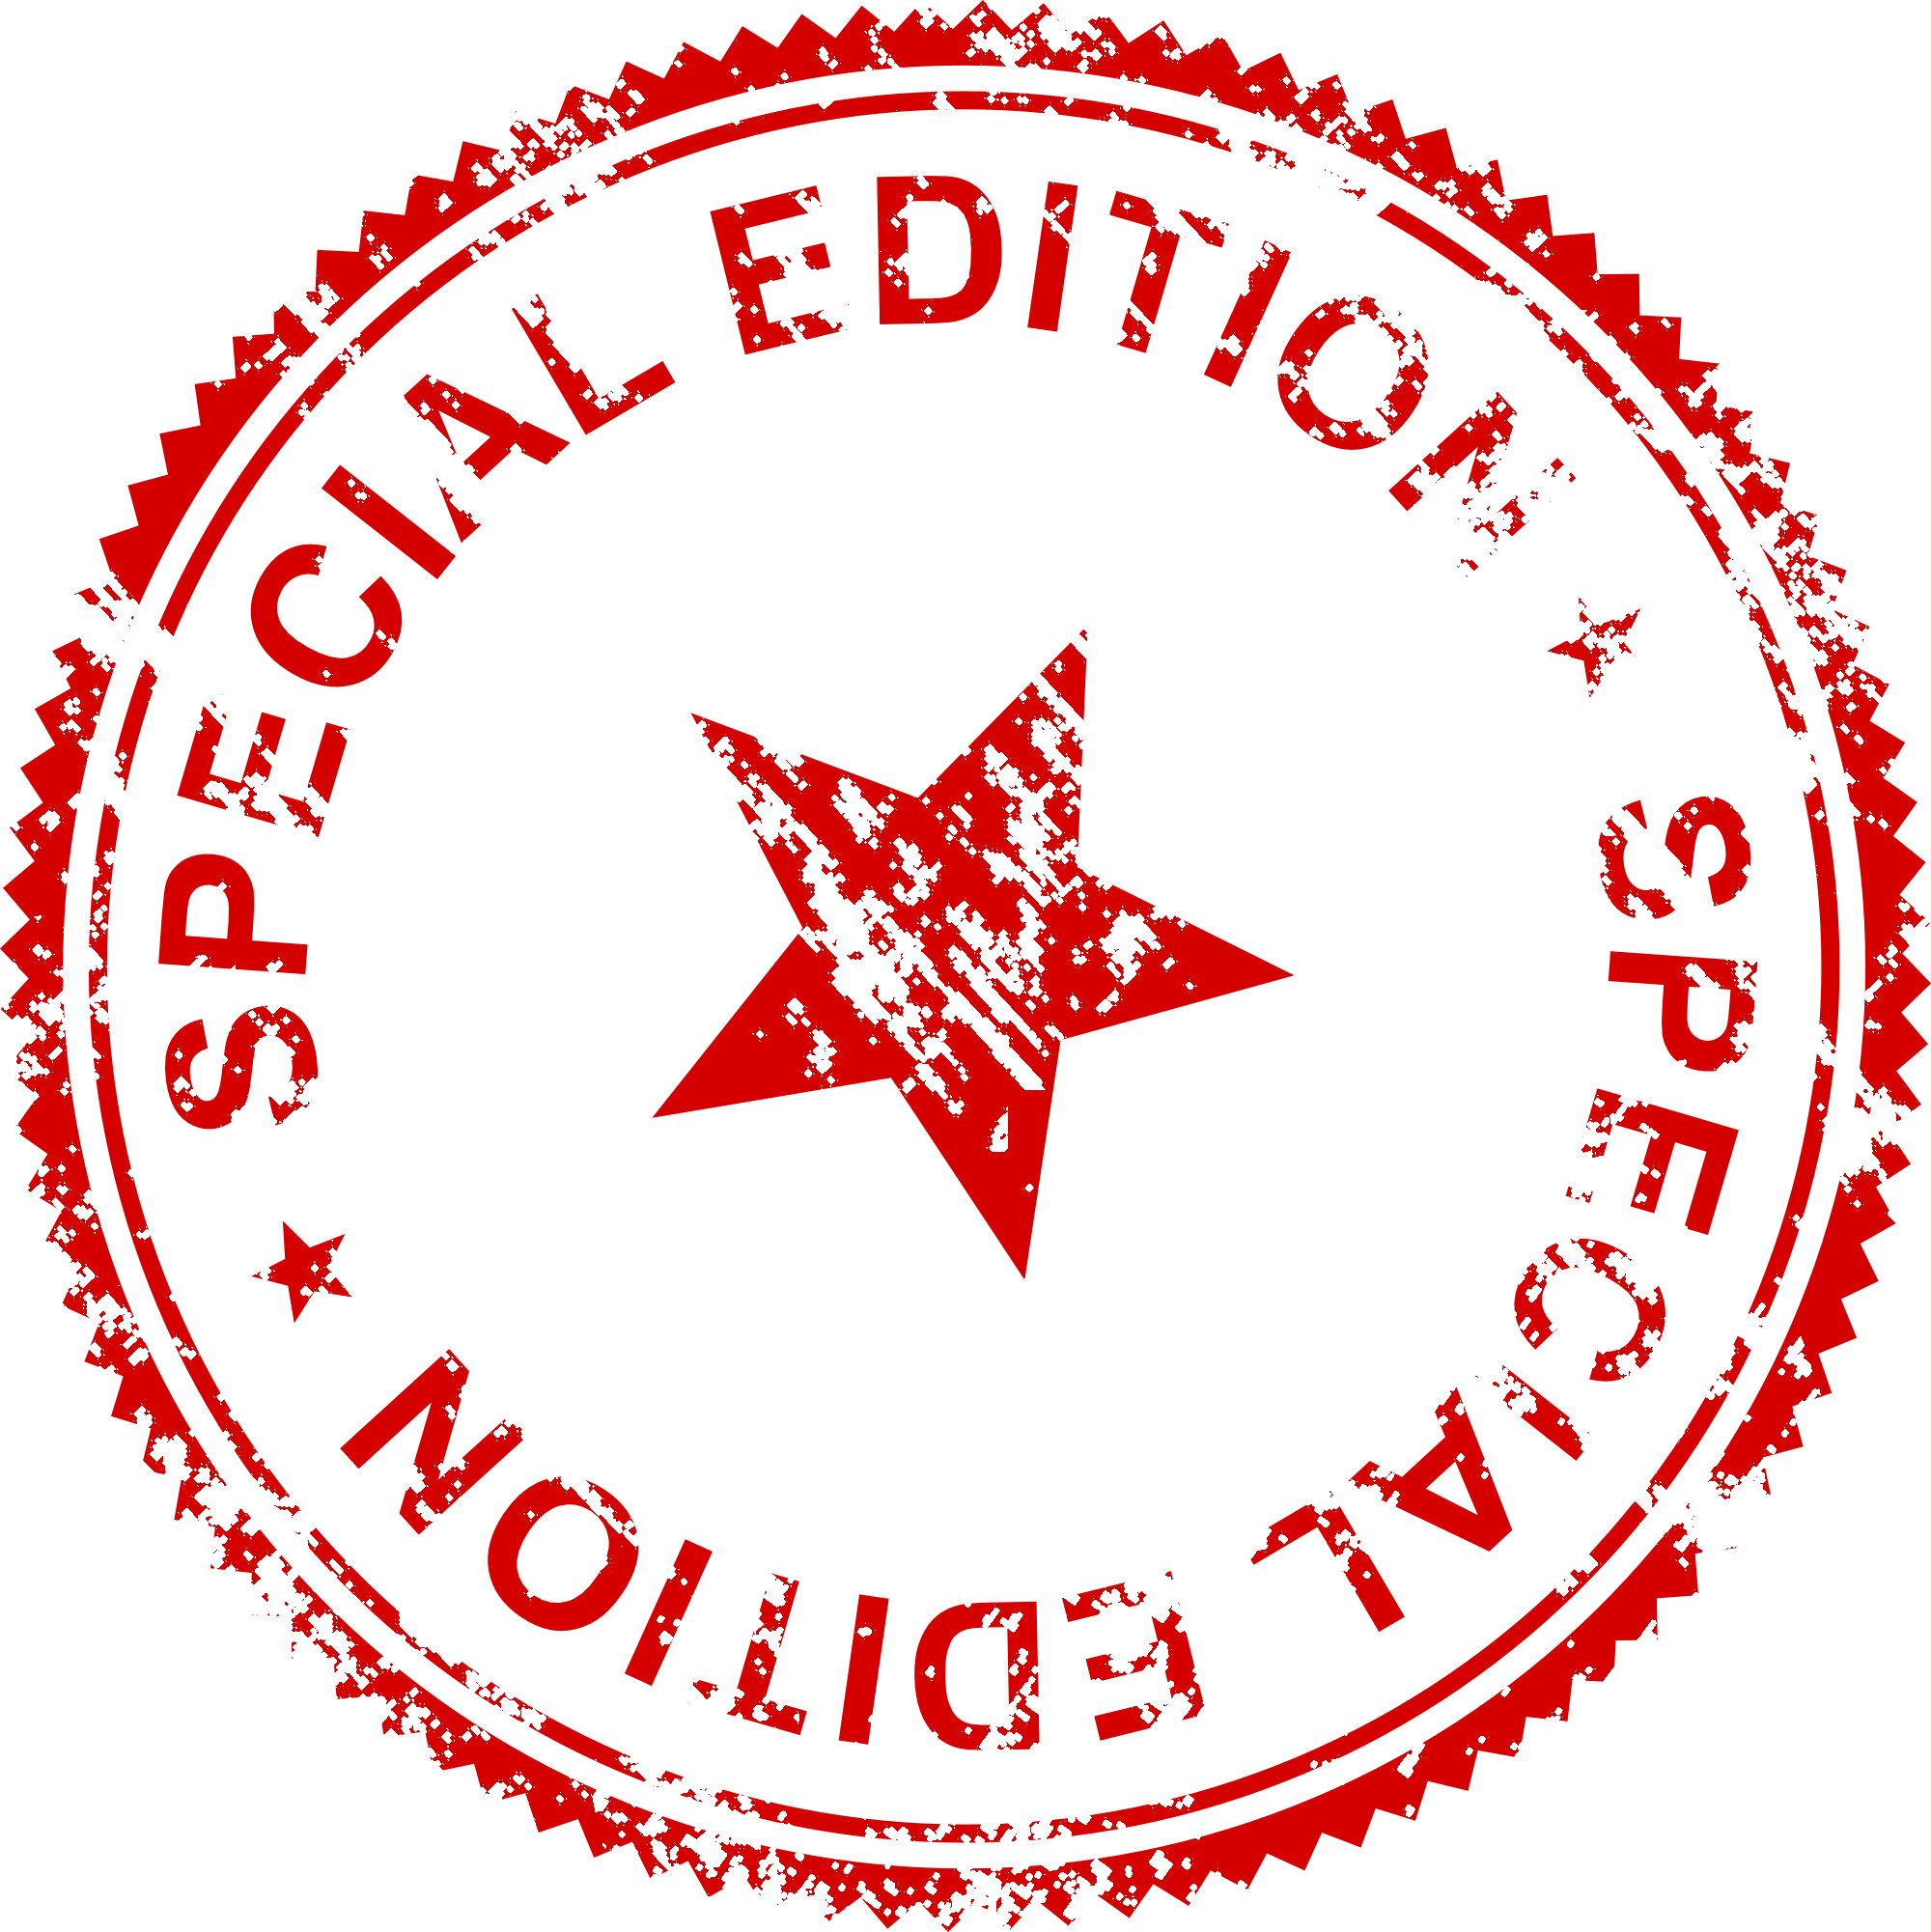 special-edition-stamp-1